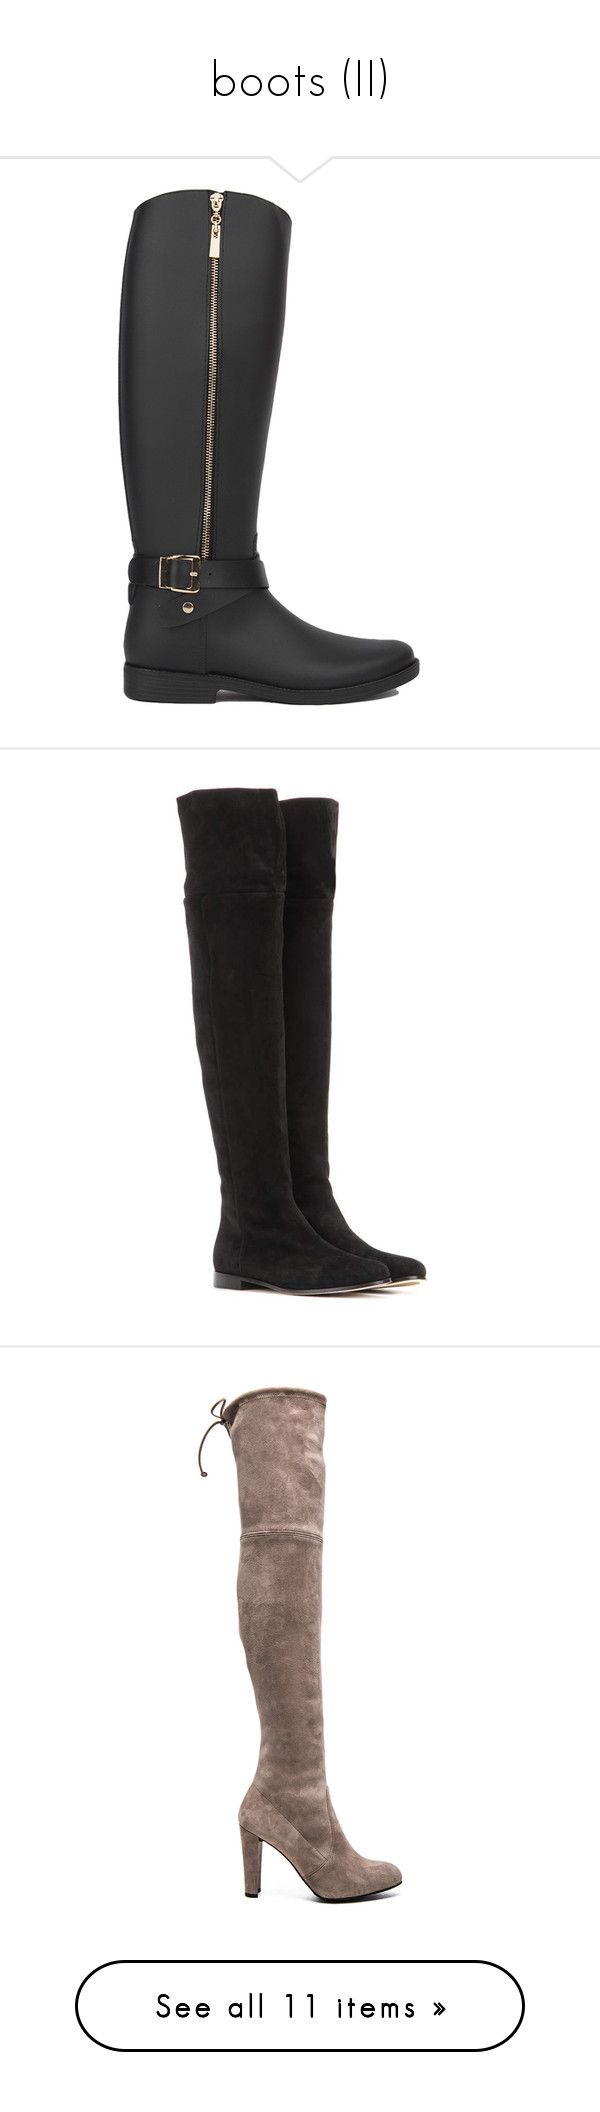 """boots (II)"" by aiyanaa ❤ liked on Polyvore featuring shoes, boots, black, knee-high boots, wellington boots, rain boots, rubber boots, black knee high boots, tall knee high boots and black over-the-knee boots"